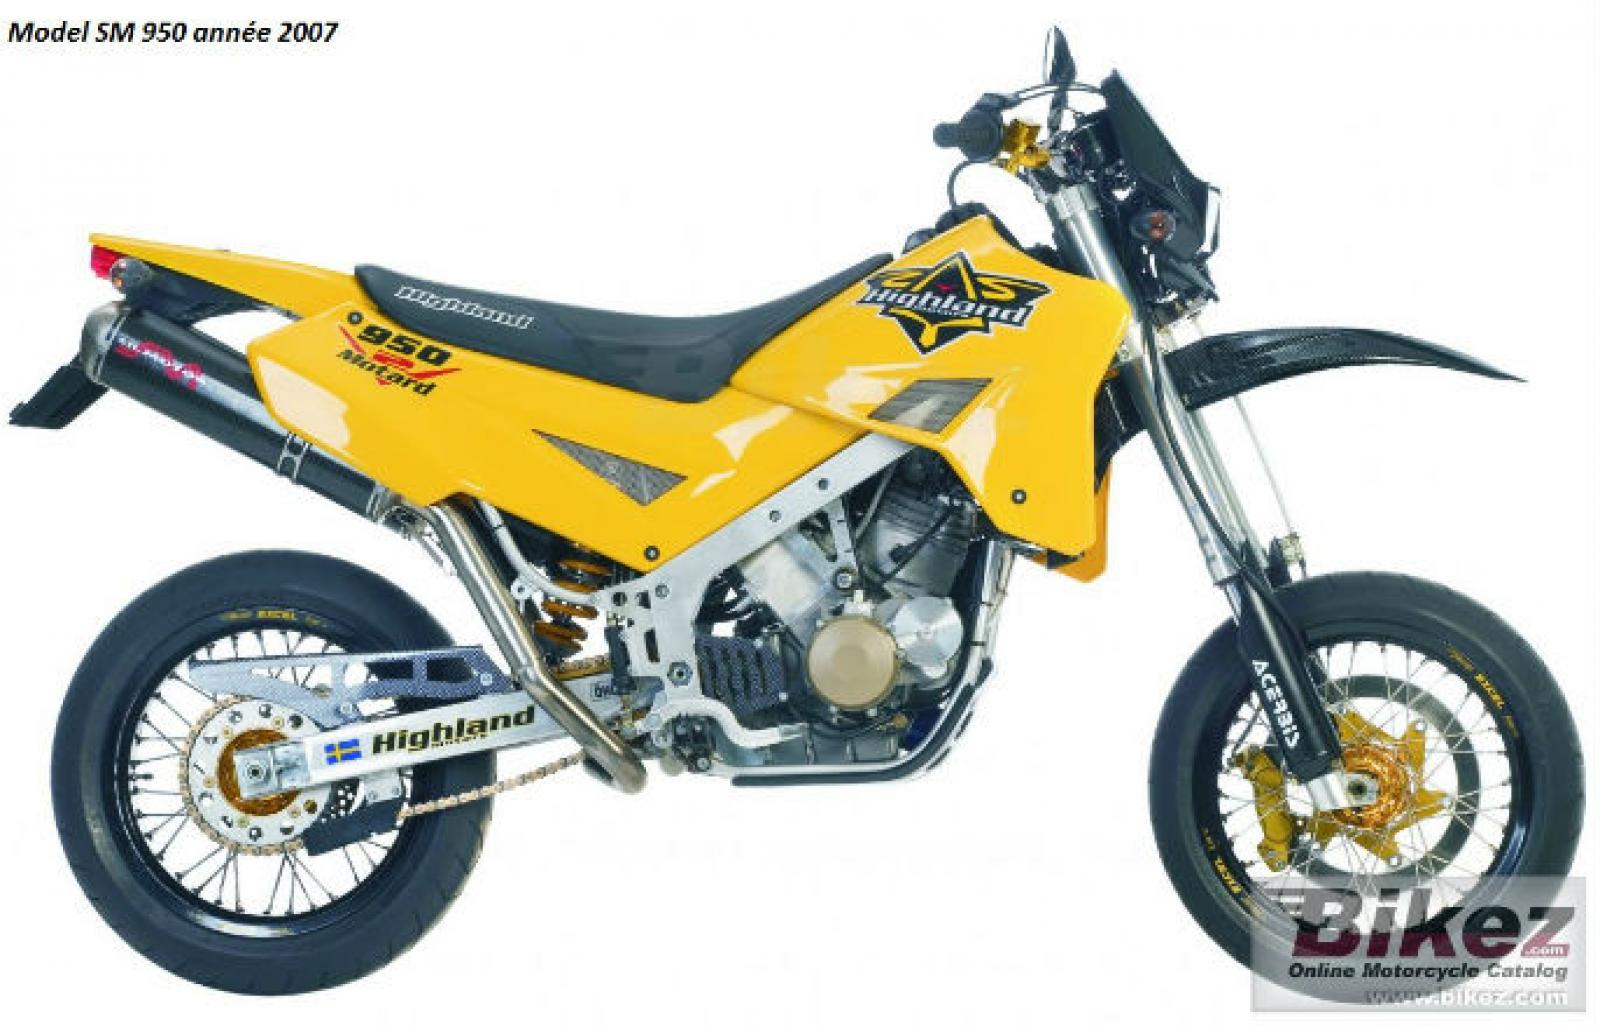 Highland 950 V2 Outback Supermoto 2005 images #97058